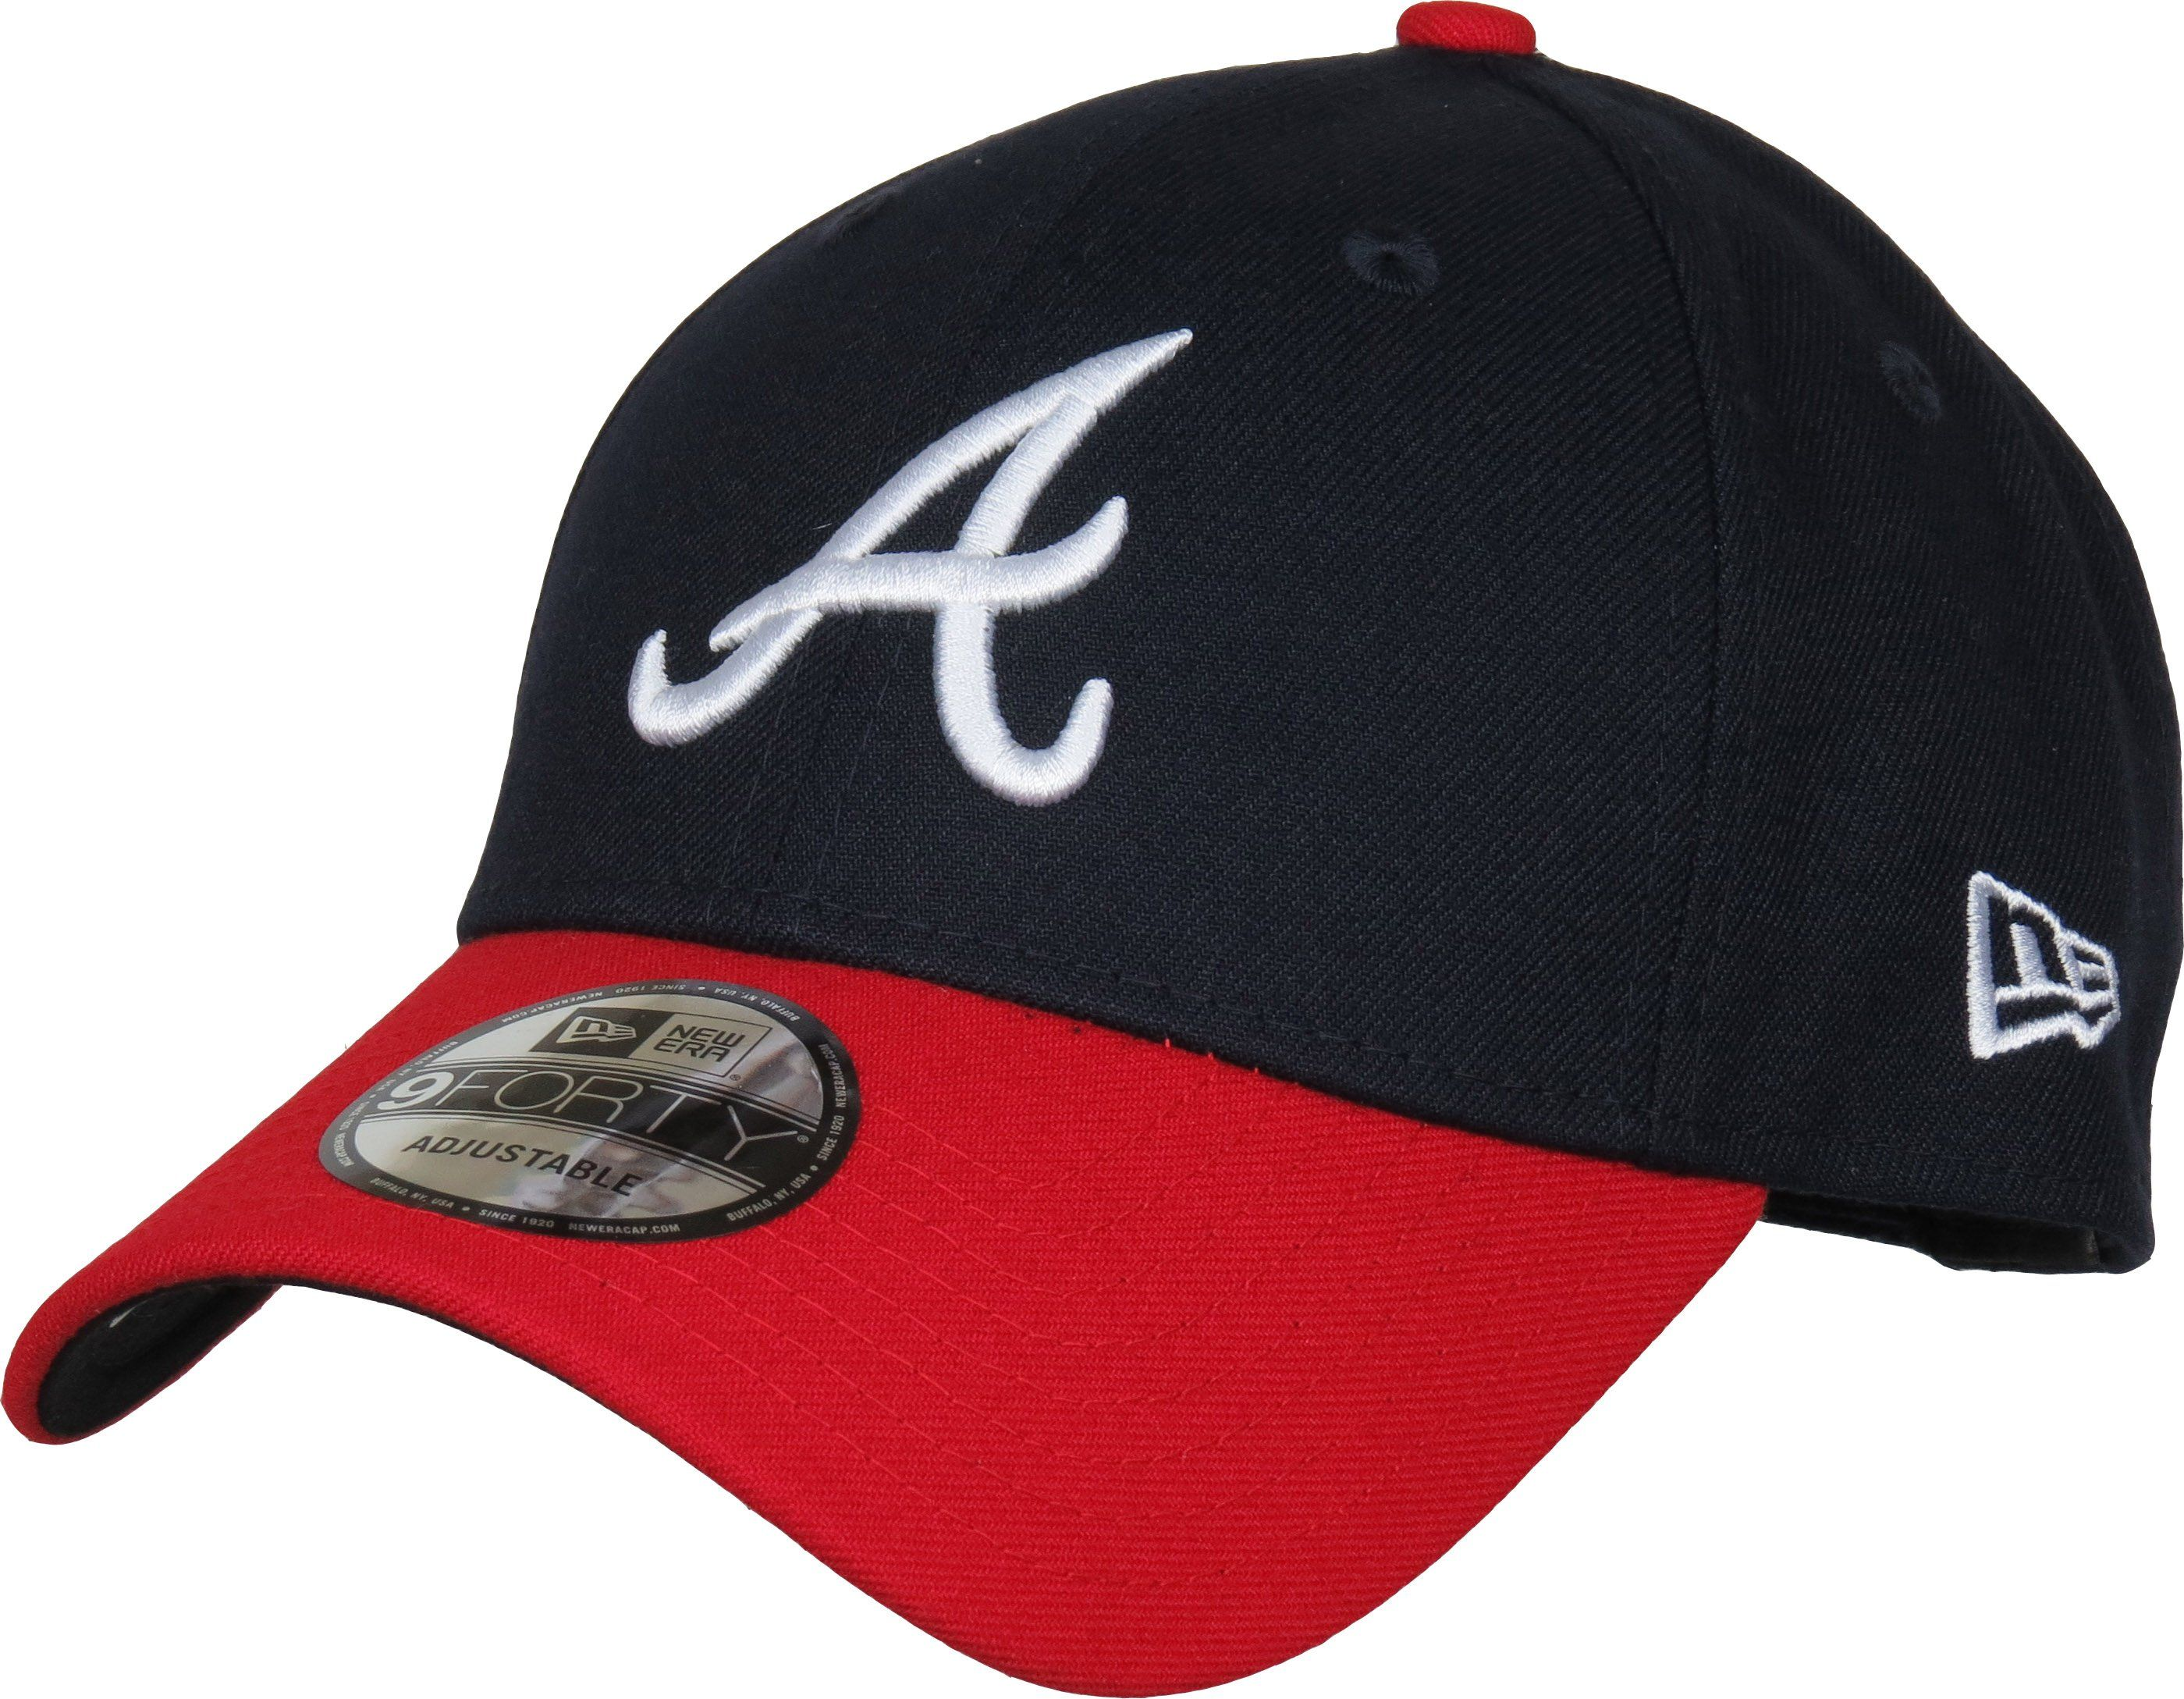 New Era 940 The League Atlanta Braves Pinch Hitter Baseball Cap Atlanta Braves Baseball Cap Braves